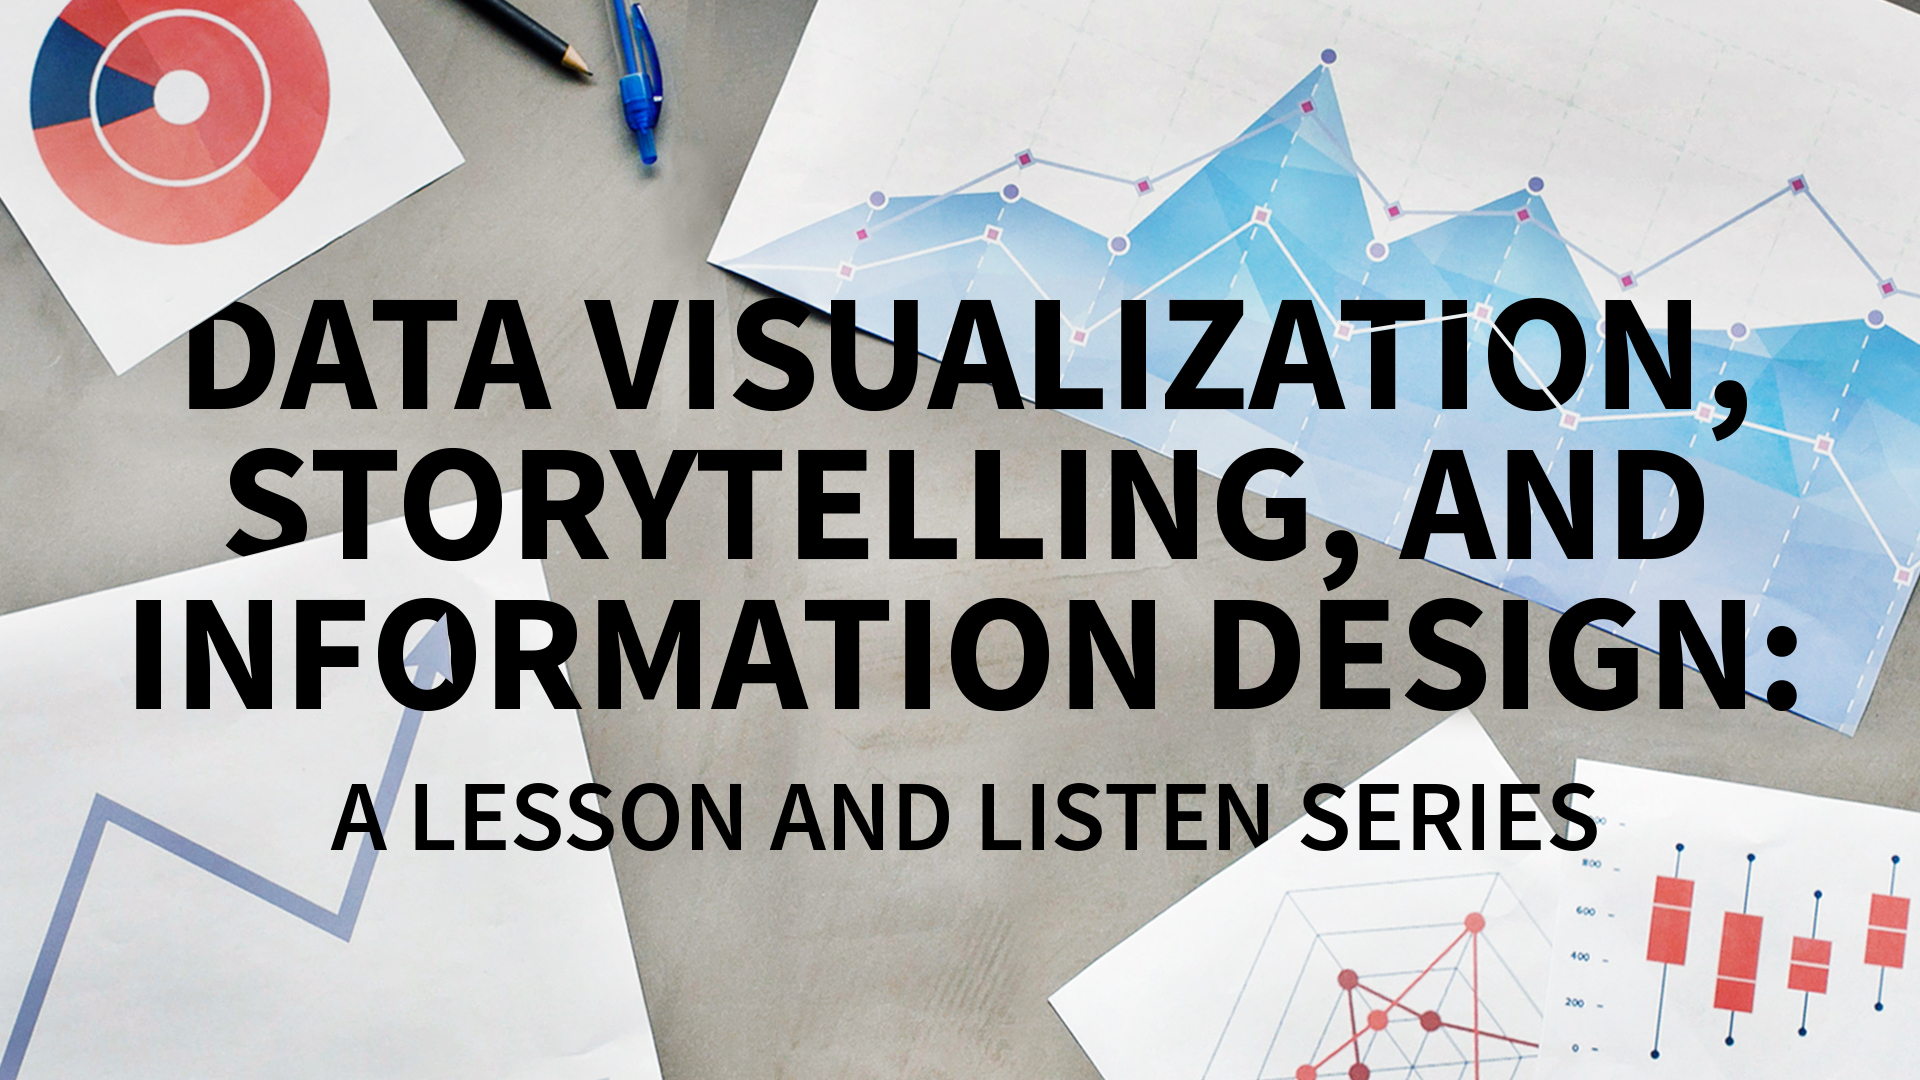 : Data Visualization, Storytelling, and Information Design: A Lesson and Listen Series